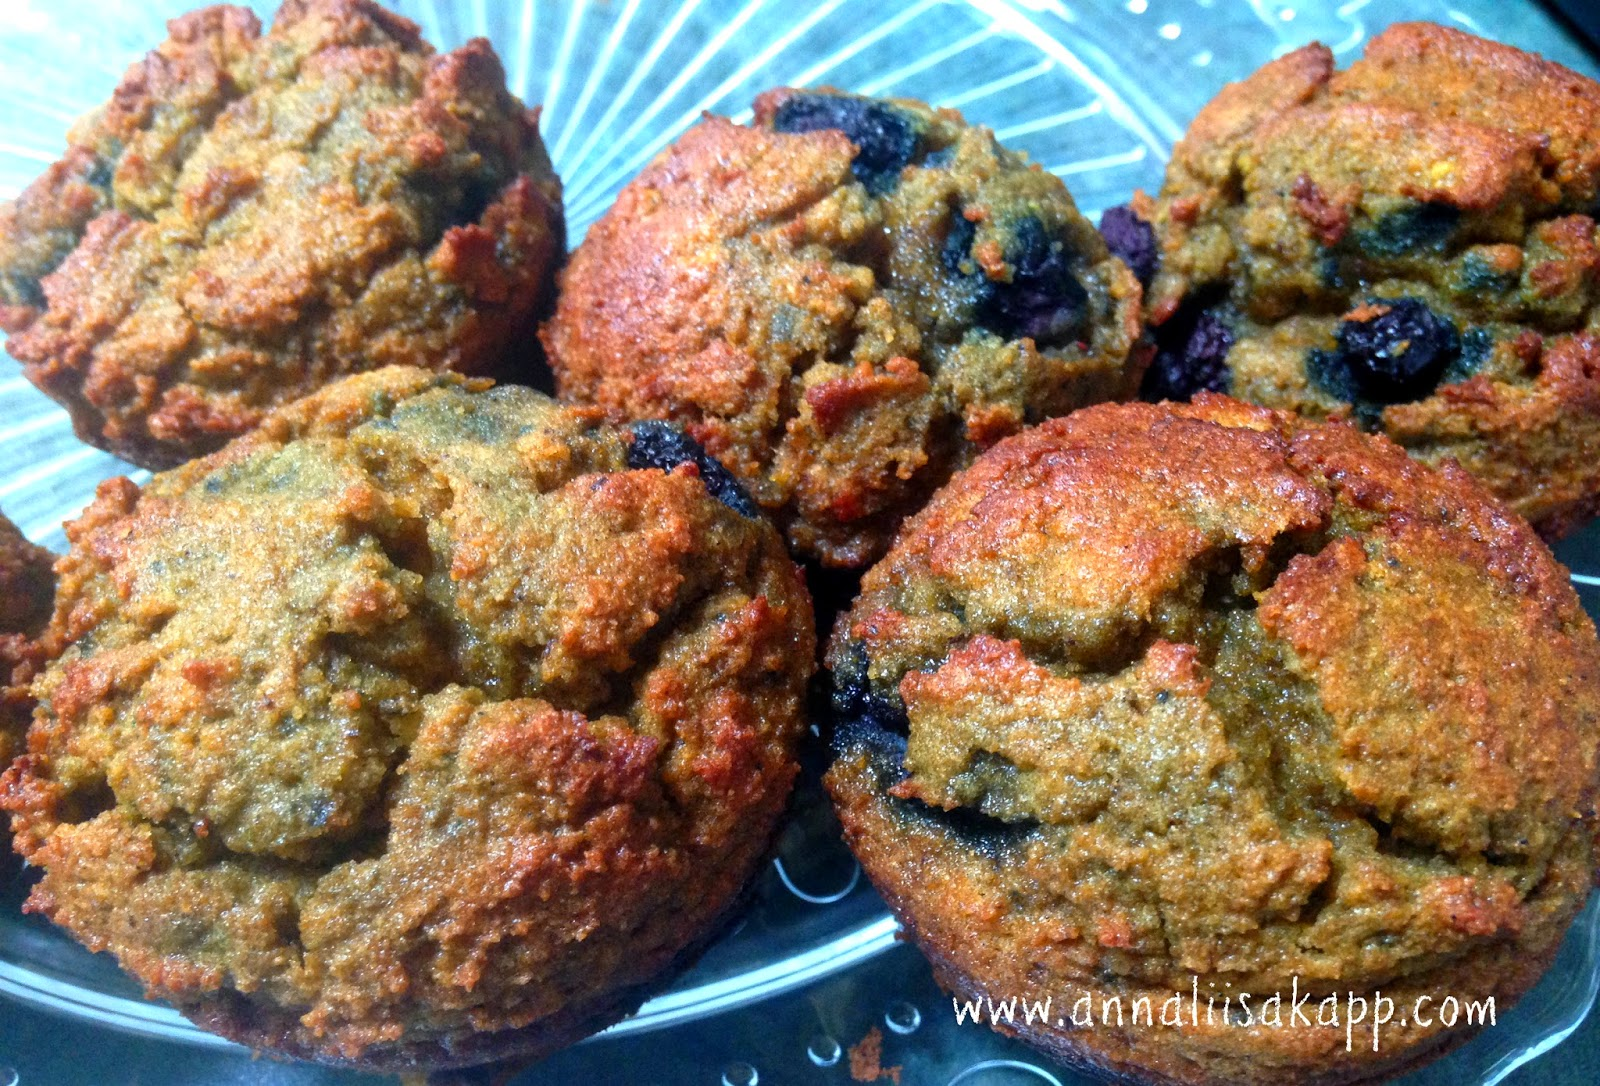 Grain-free, dairy-free simple coconut blueberry muffin recipe